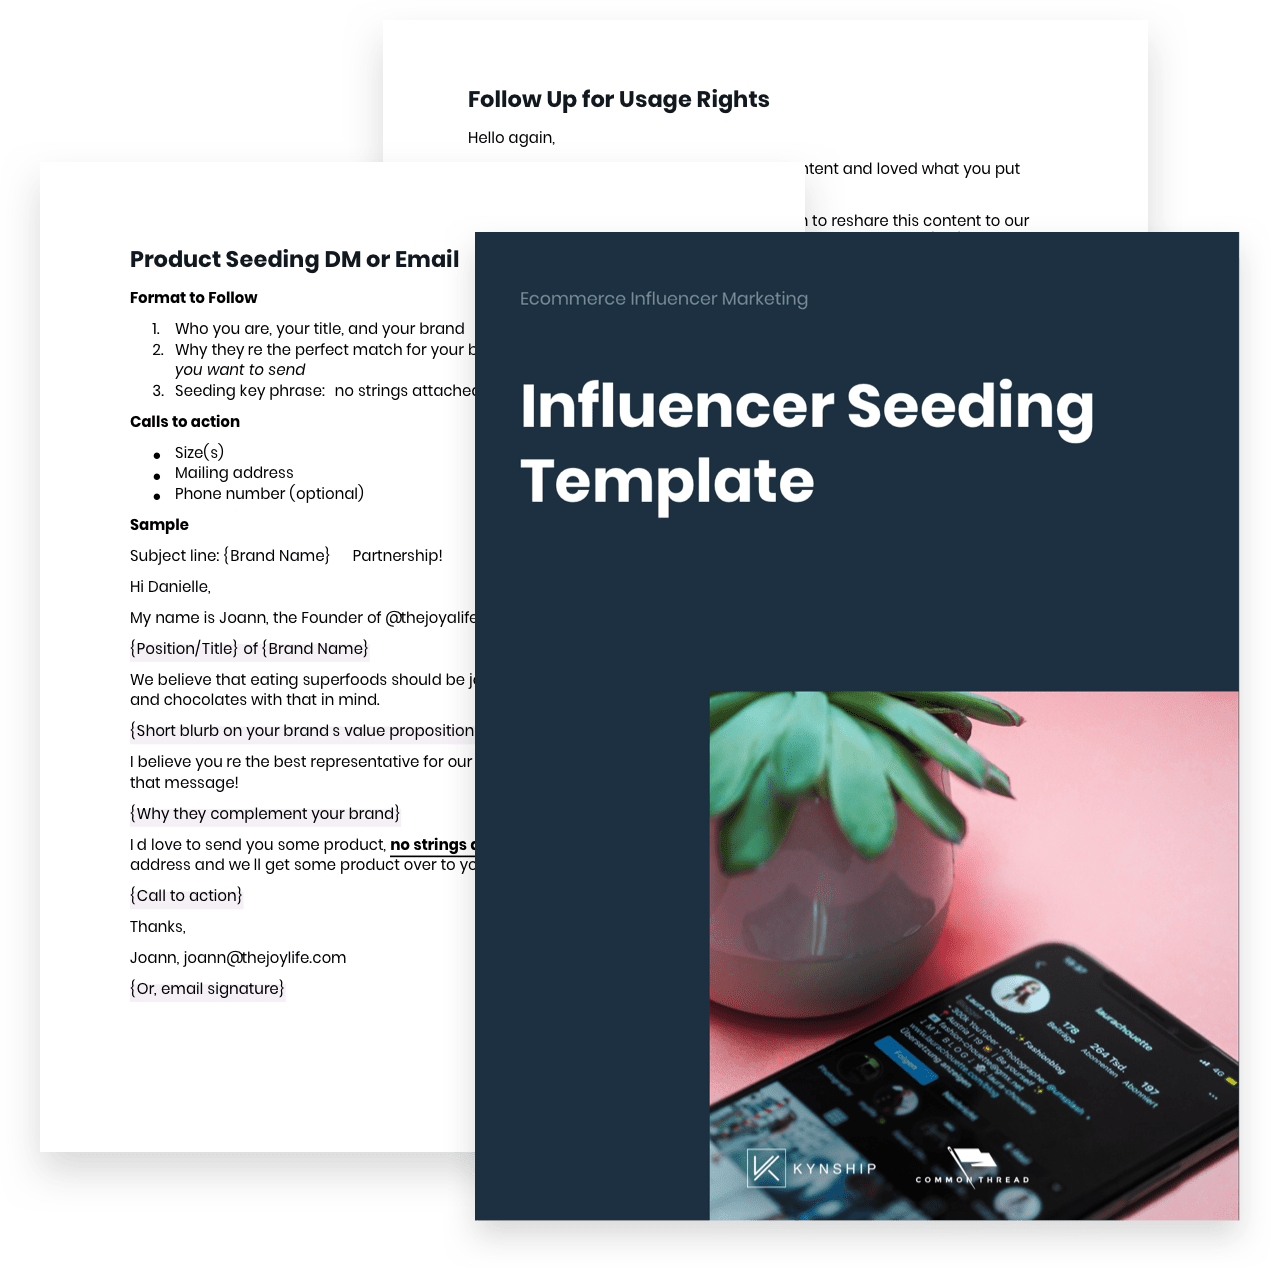 Ecommerce Influencer Marketing: Influencer Seeding Template